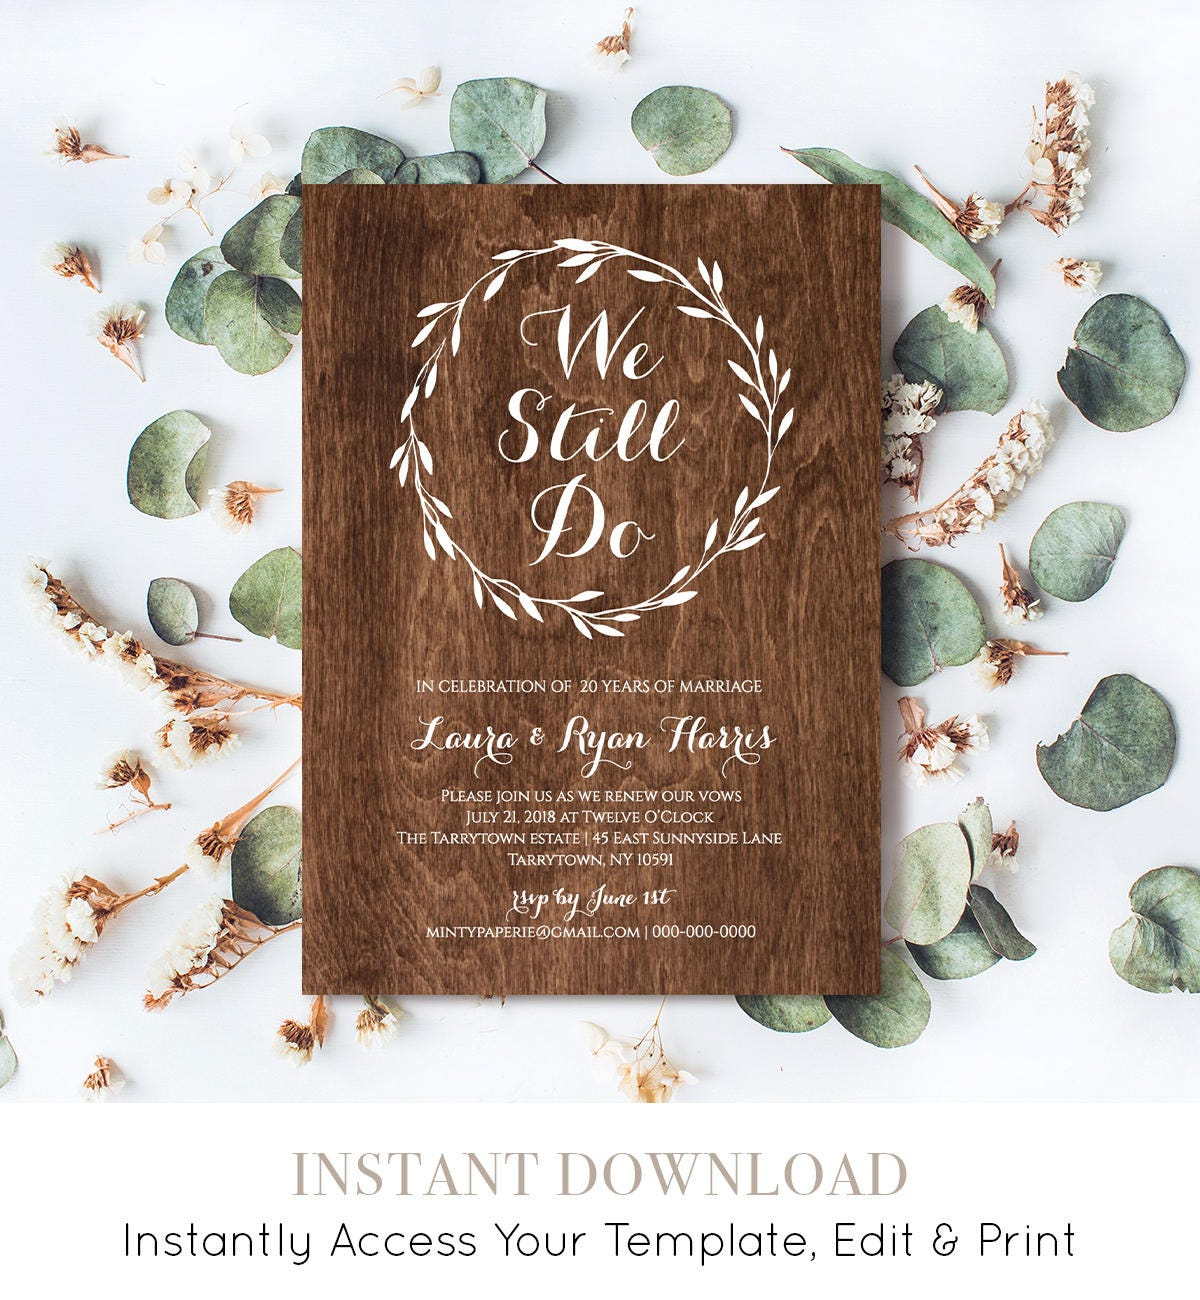 Vow Renewal Invitation INSTANT DOWNLOAD We Still Do Rustic